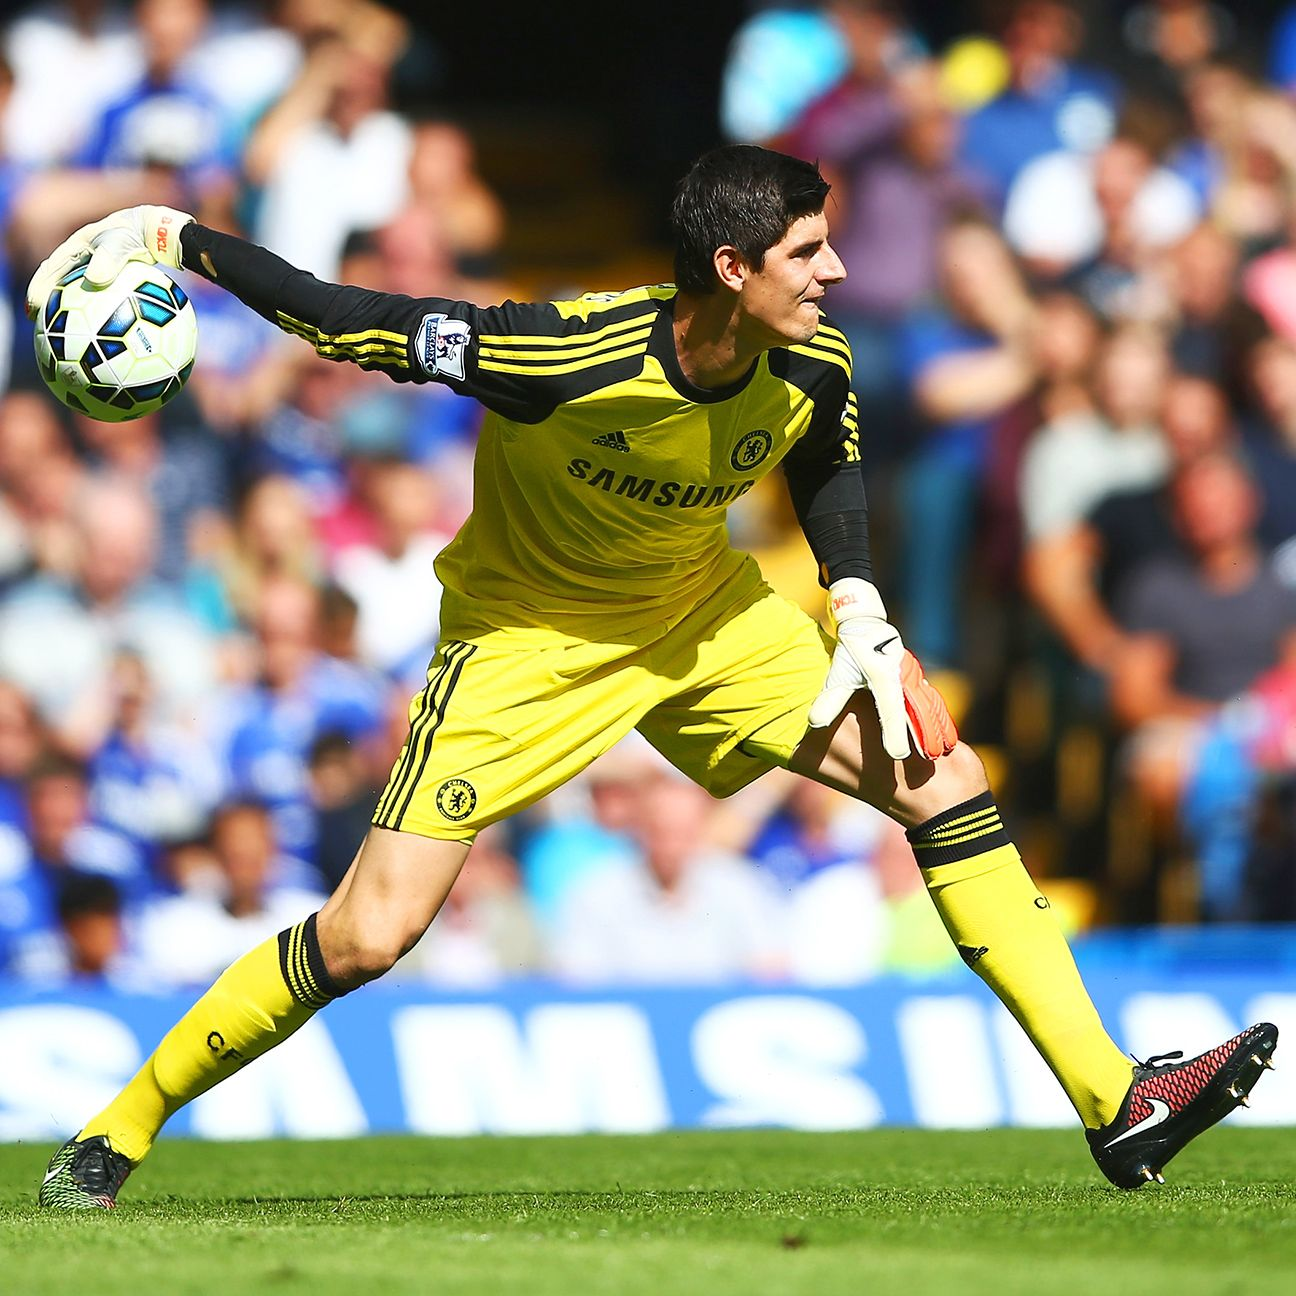 Thibaut Courtois won the Chelsea starting goalkeeping spot over long-time incumbent Petr Cech.